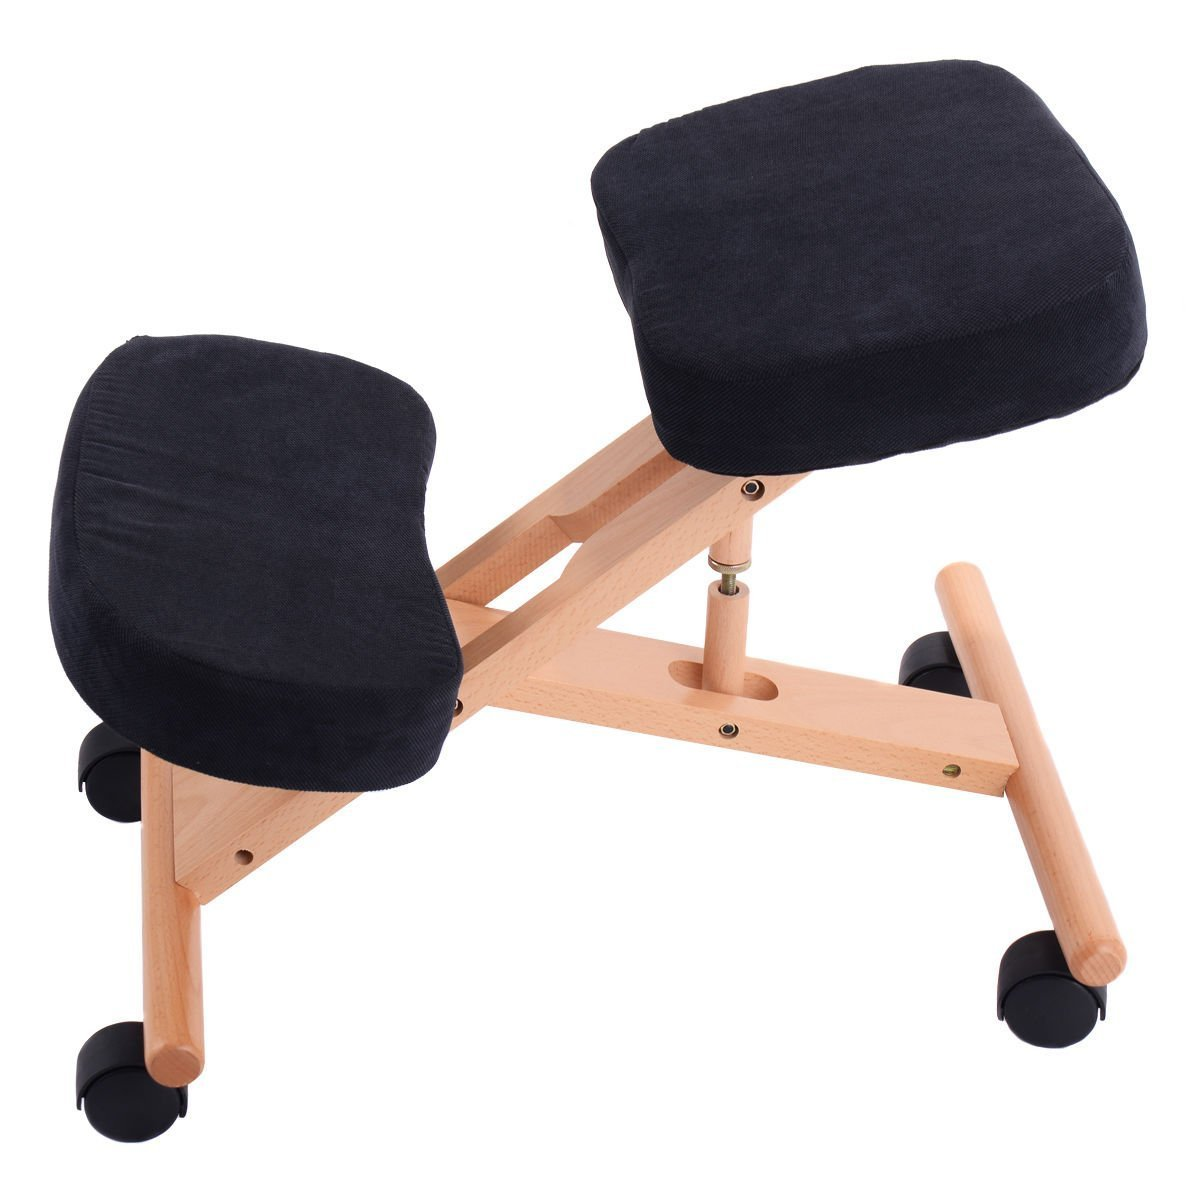 PRO 11 WELLBEING Adjustable Ergonomic Kneeling Chair 3 Colours (Black)